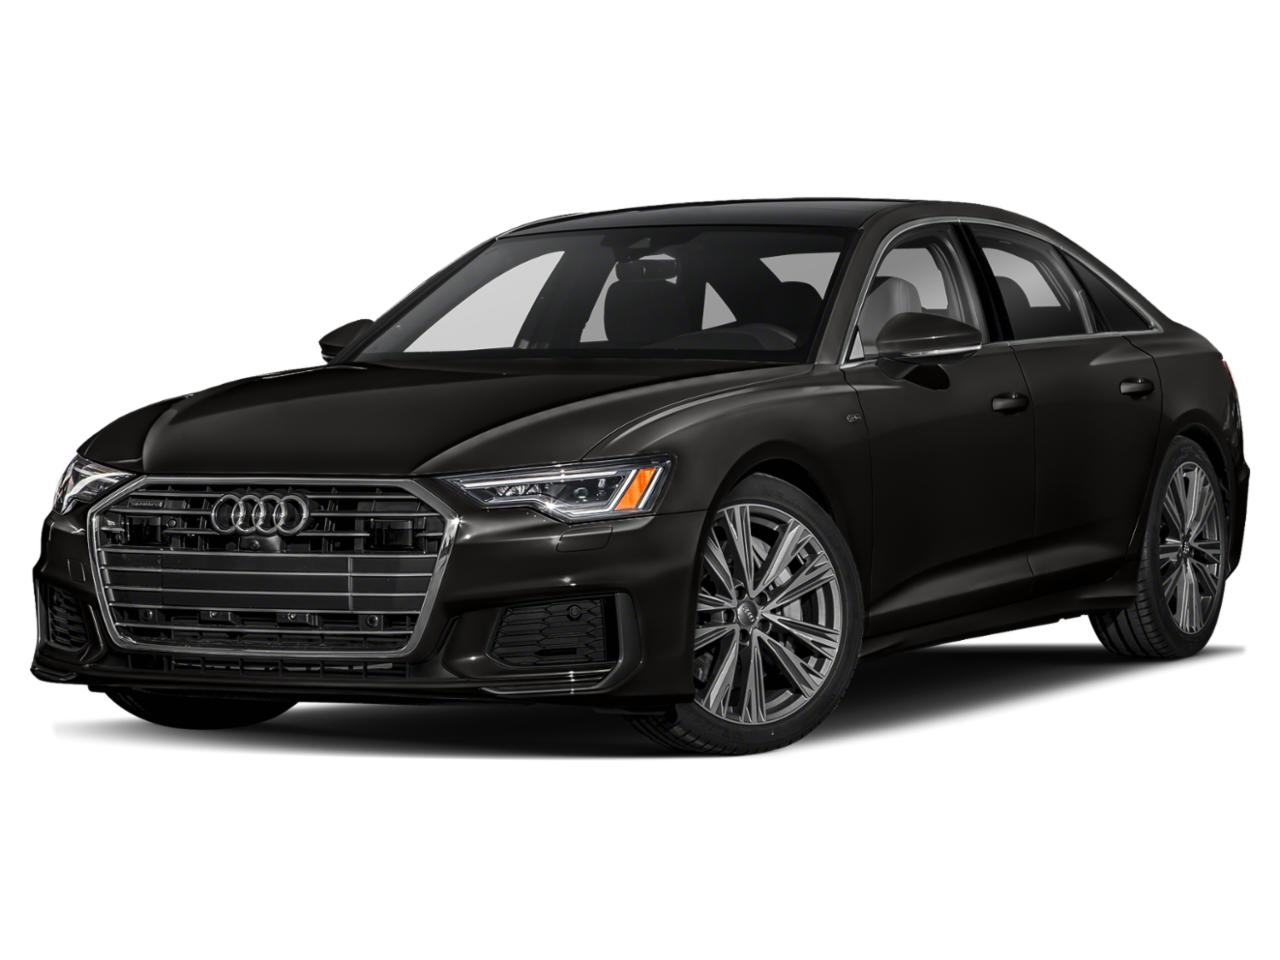 2020 Audi A6 Vehicle Photo in Allentown, PA 18103